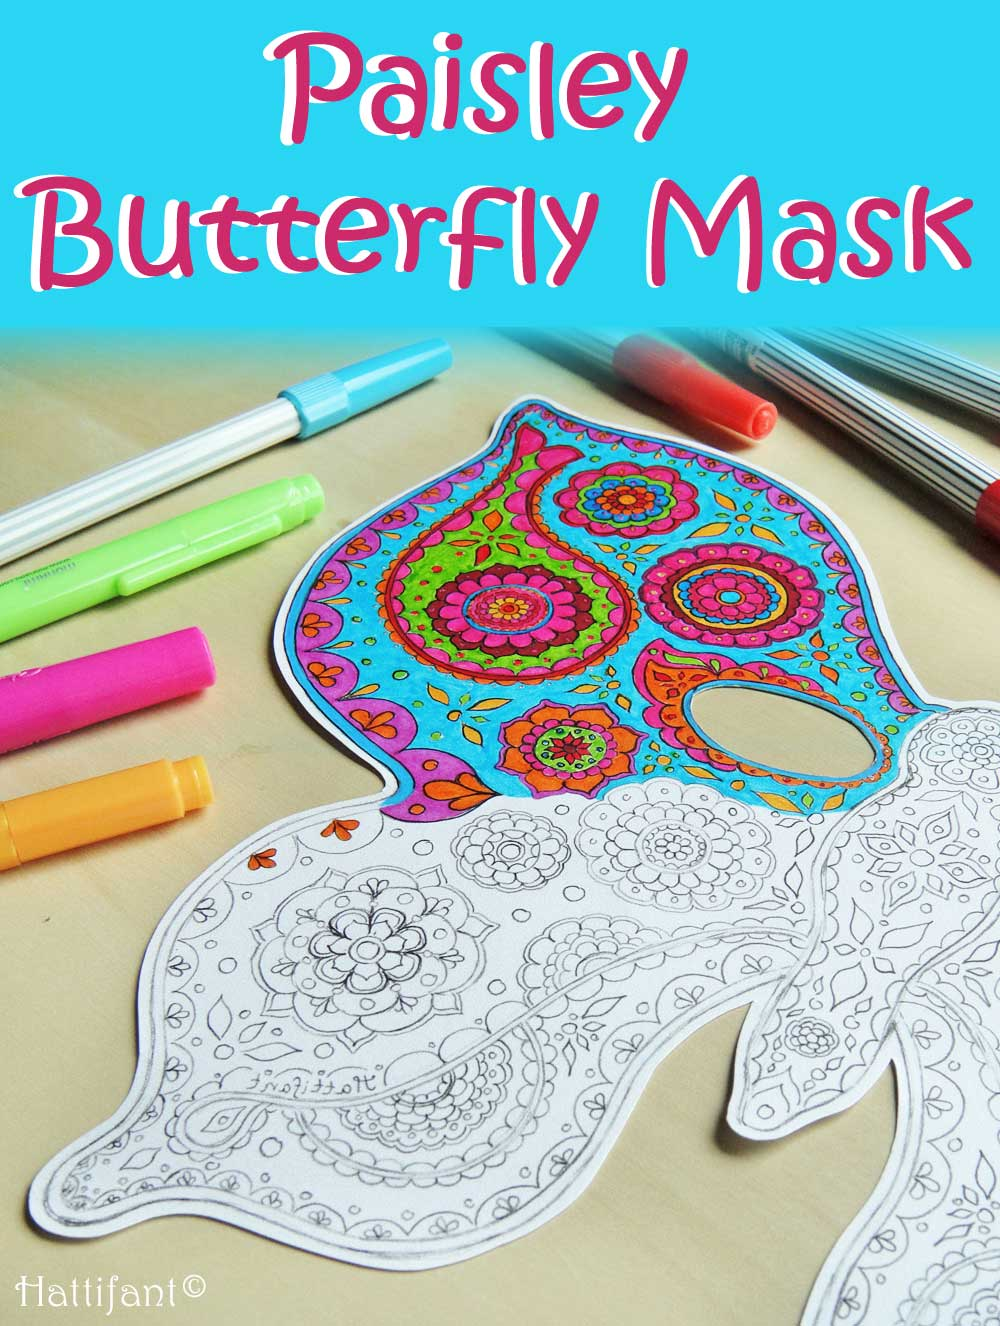 Hattifant Paisley Butterfly Paper Mask to DIY, Color and Craft